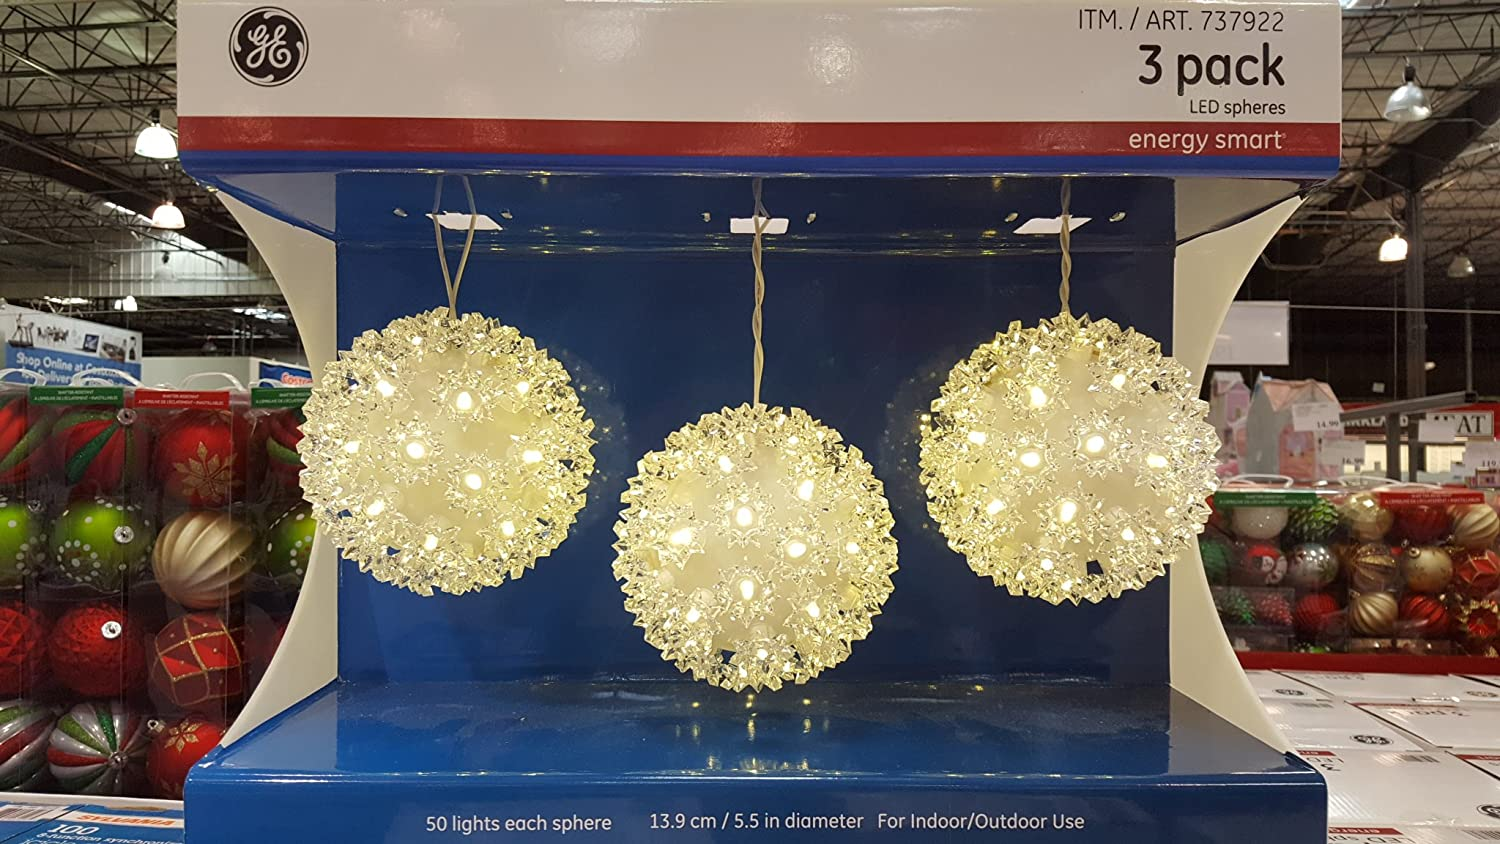 GE LED Spheres - 3 pack